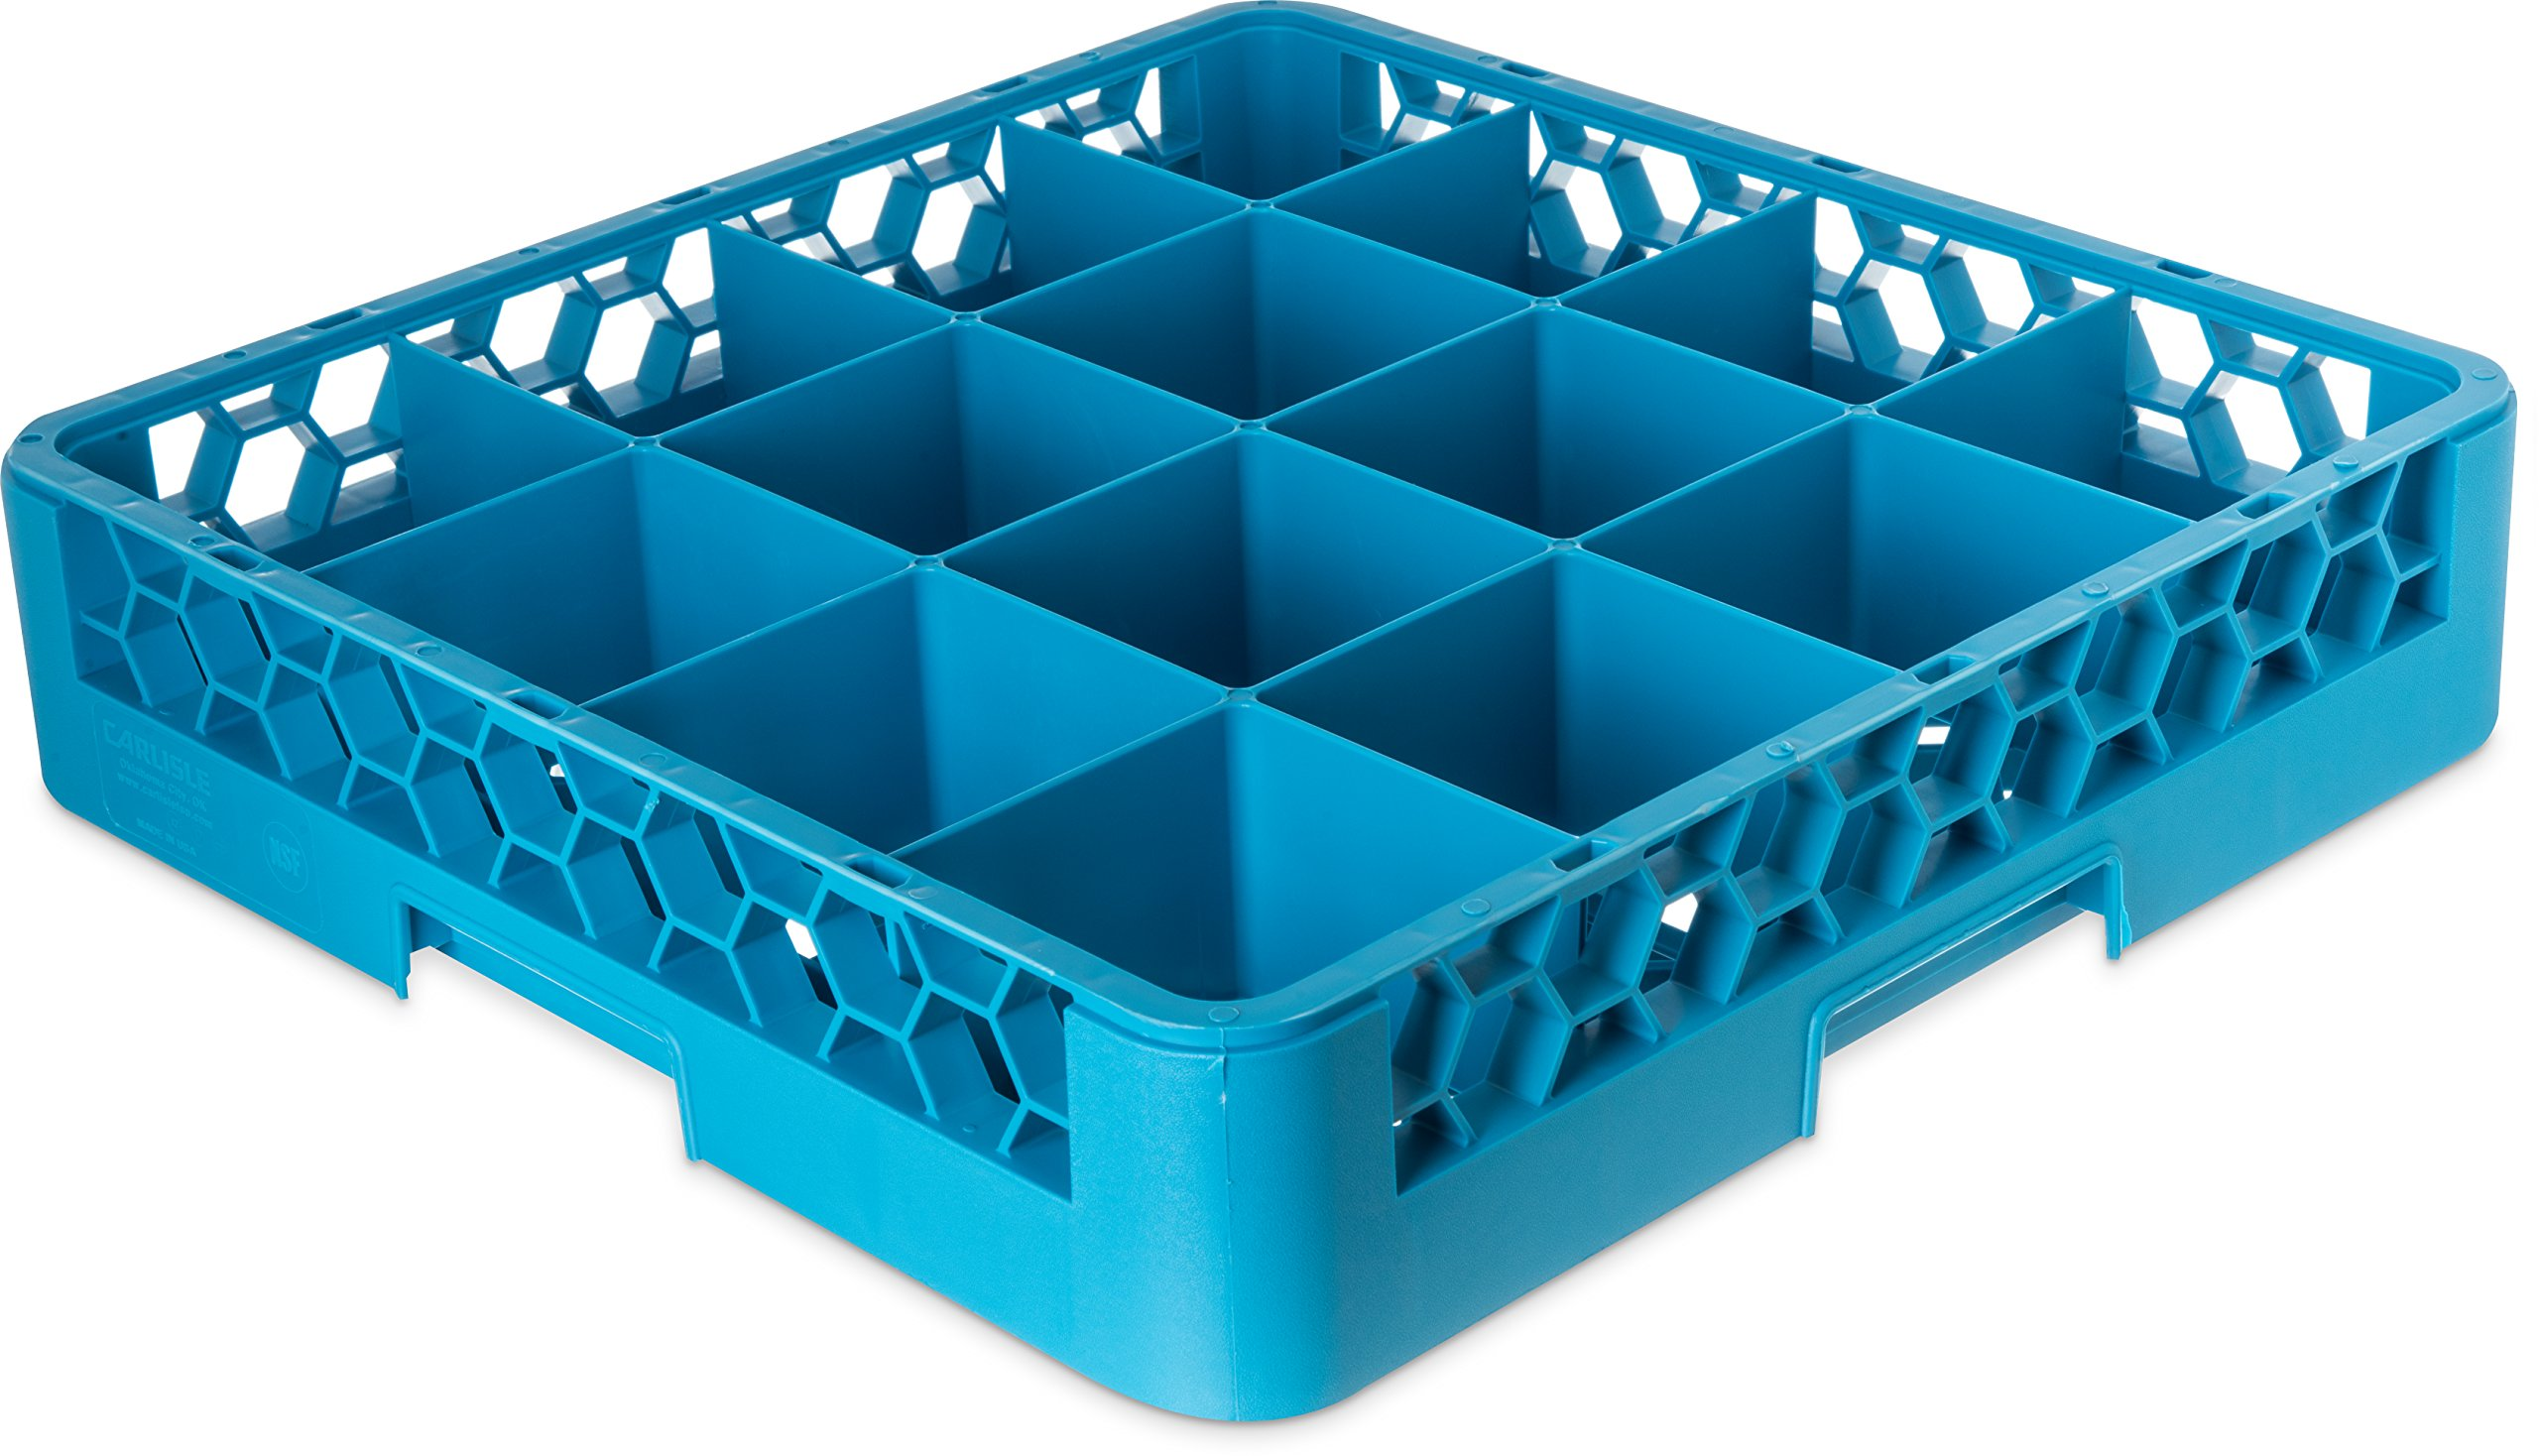 Carlisle RC1614 OptiClean Tilted 16 Compartment Cup Rack with 1 Extender, Blue (Pack of 4)